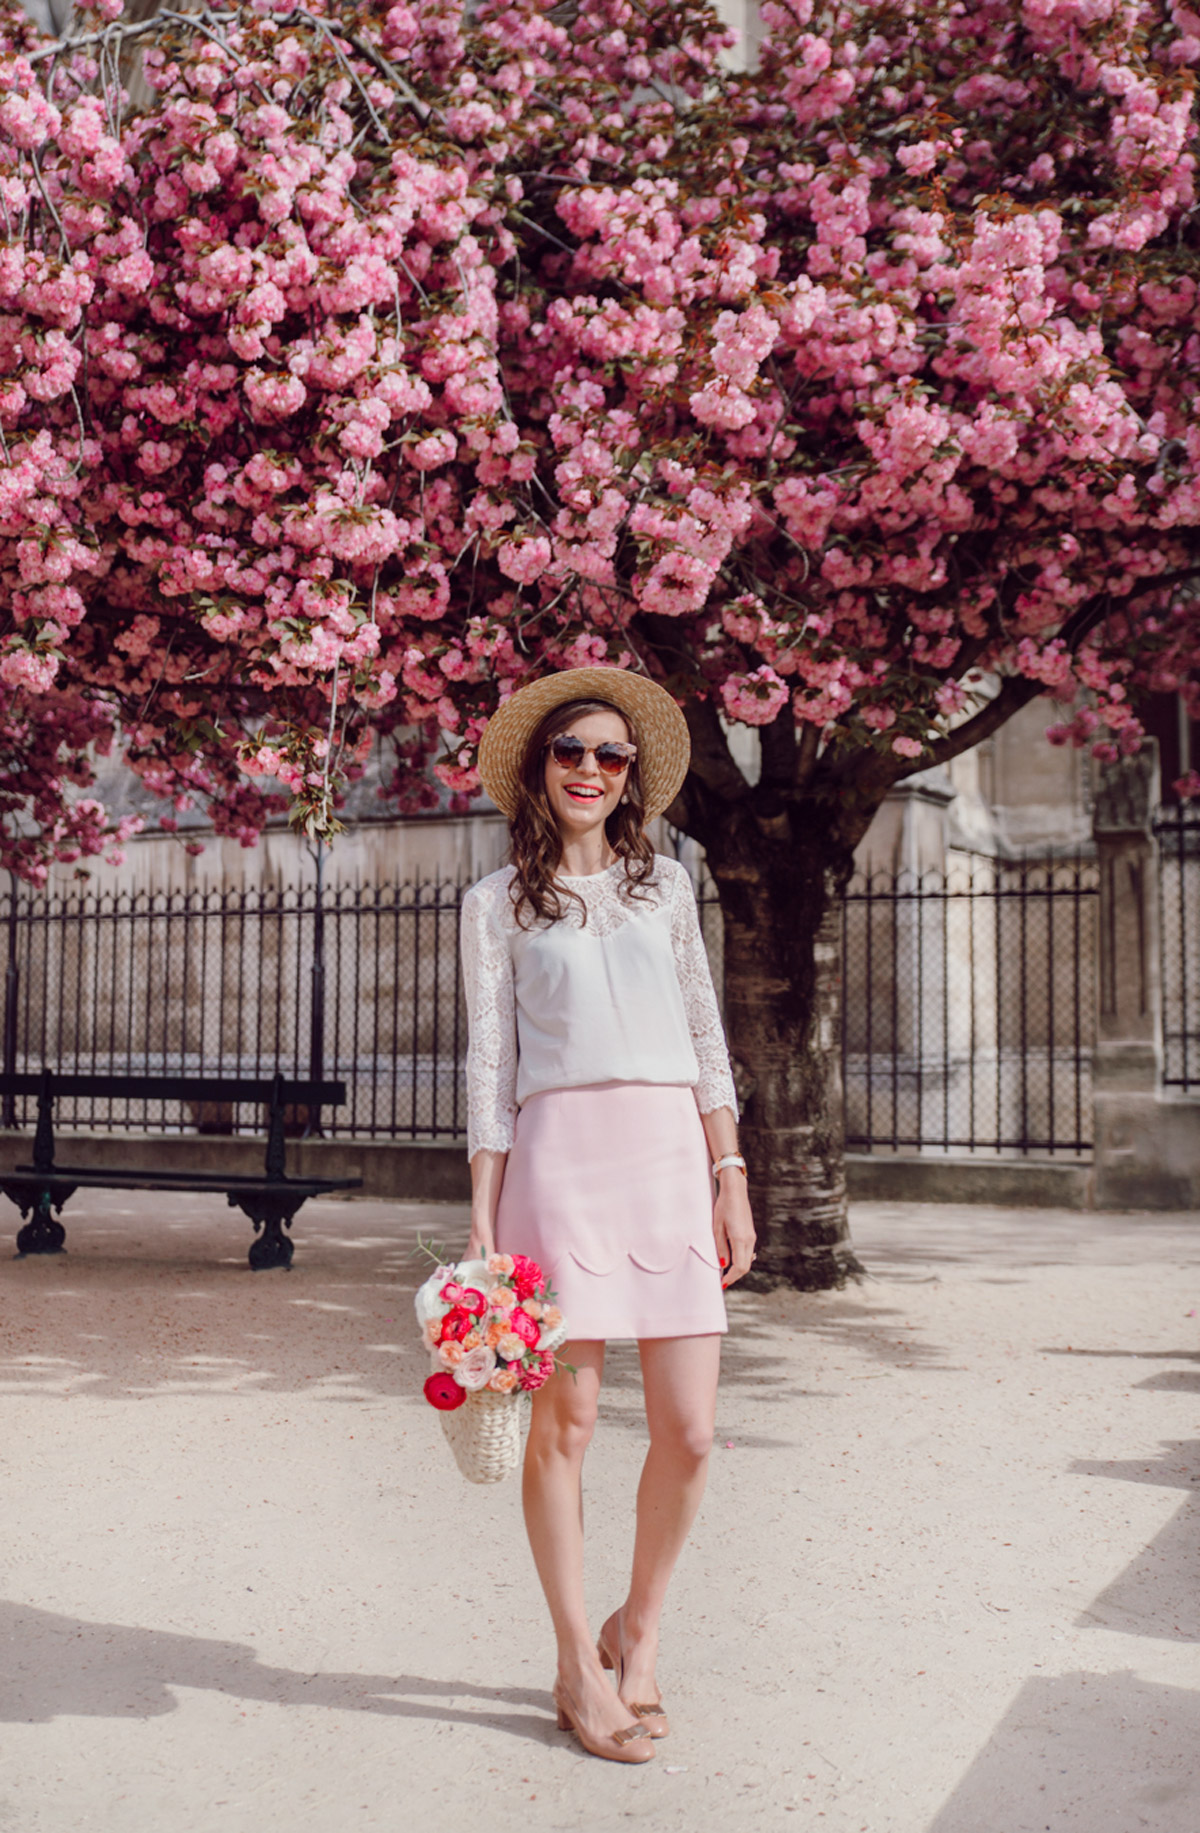 Blog-Mode-And-The-City-Looks-Notre-Dame-arbre-en-fleurs